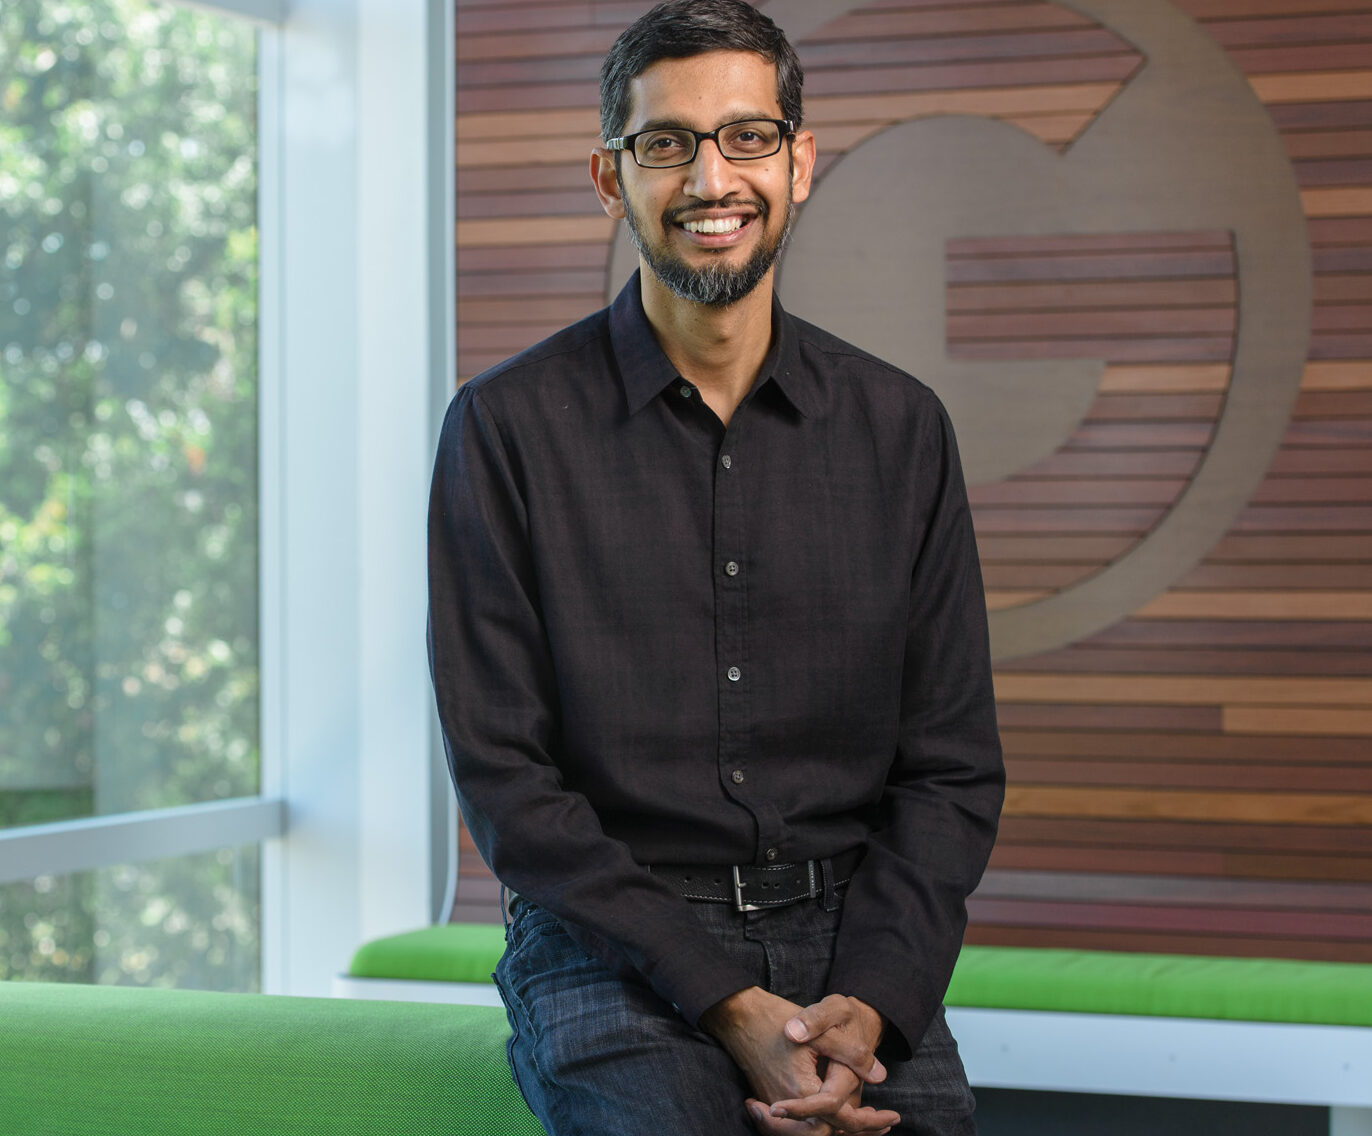 How Much Salary Sundar Pichai Receives As CEO of Alphabet and Google? Get The Numbers Here  How Much Salary Sundar Pichai Receives As CEO of Alphabet and Google? Get The Numbers Here 6 4 e1577704207836